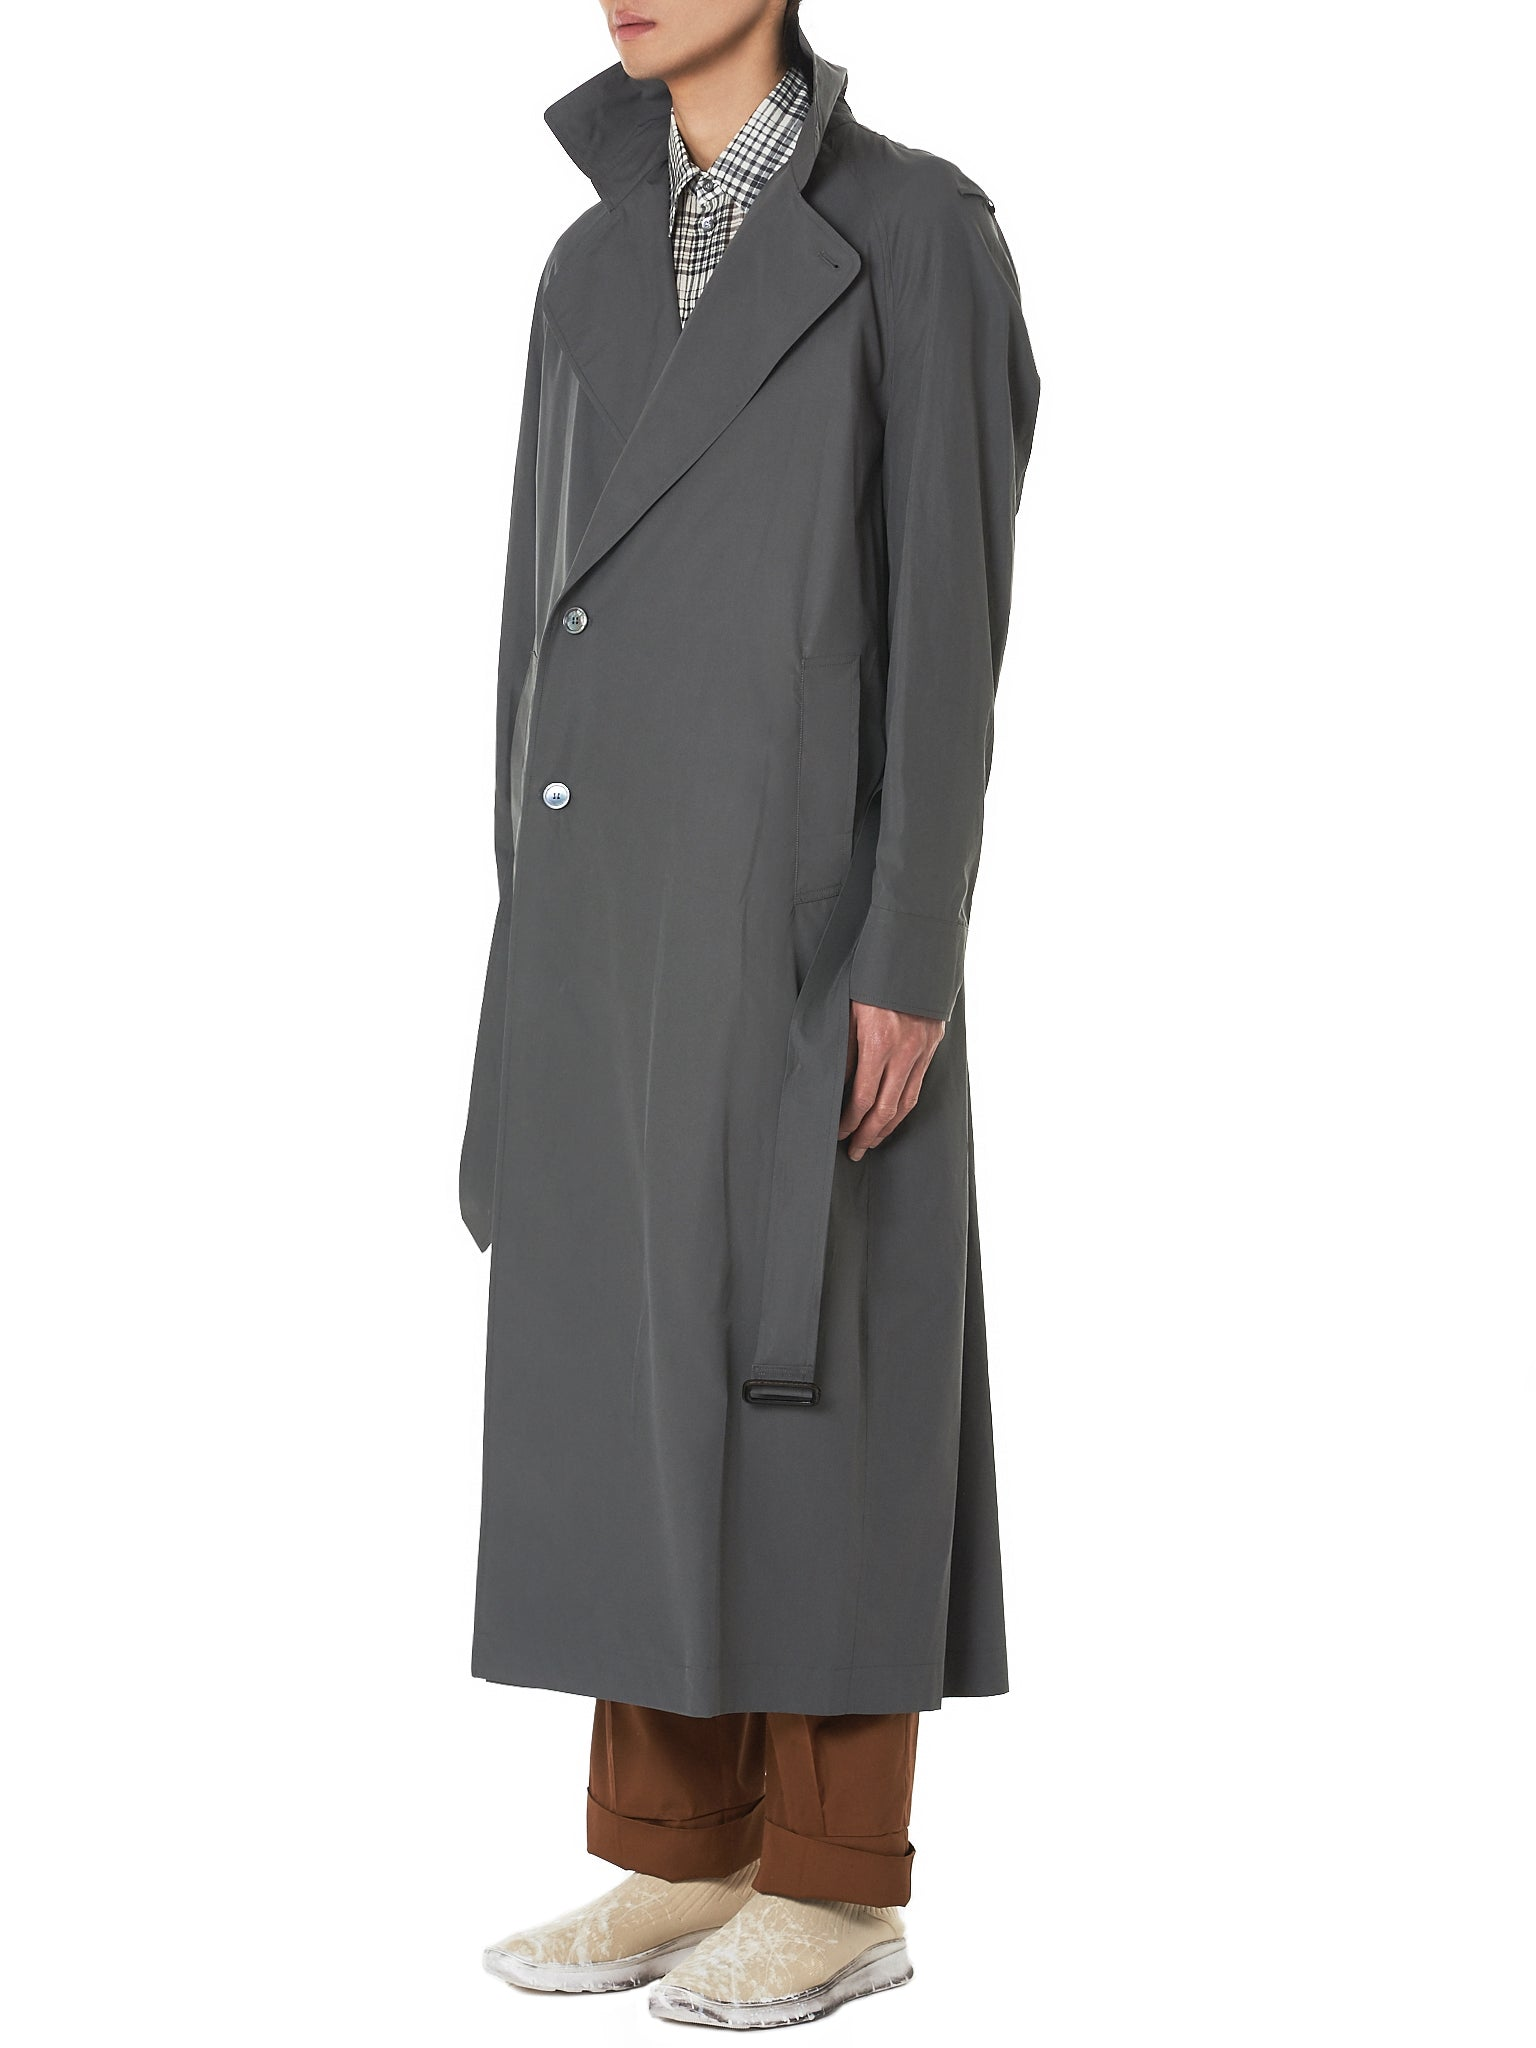 Federico Curradi Trench Coat - Hlorenzo Side